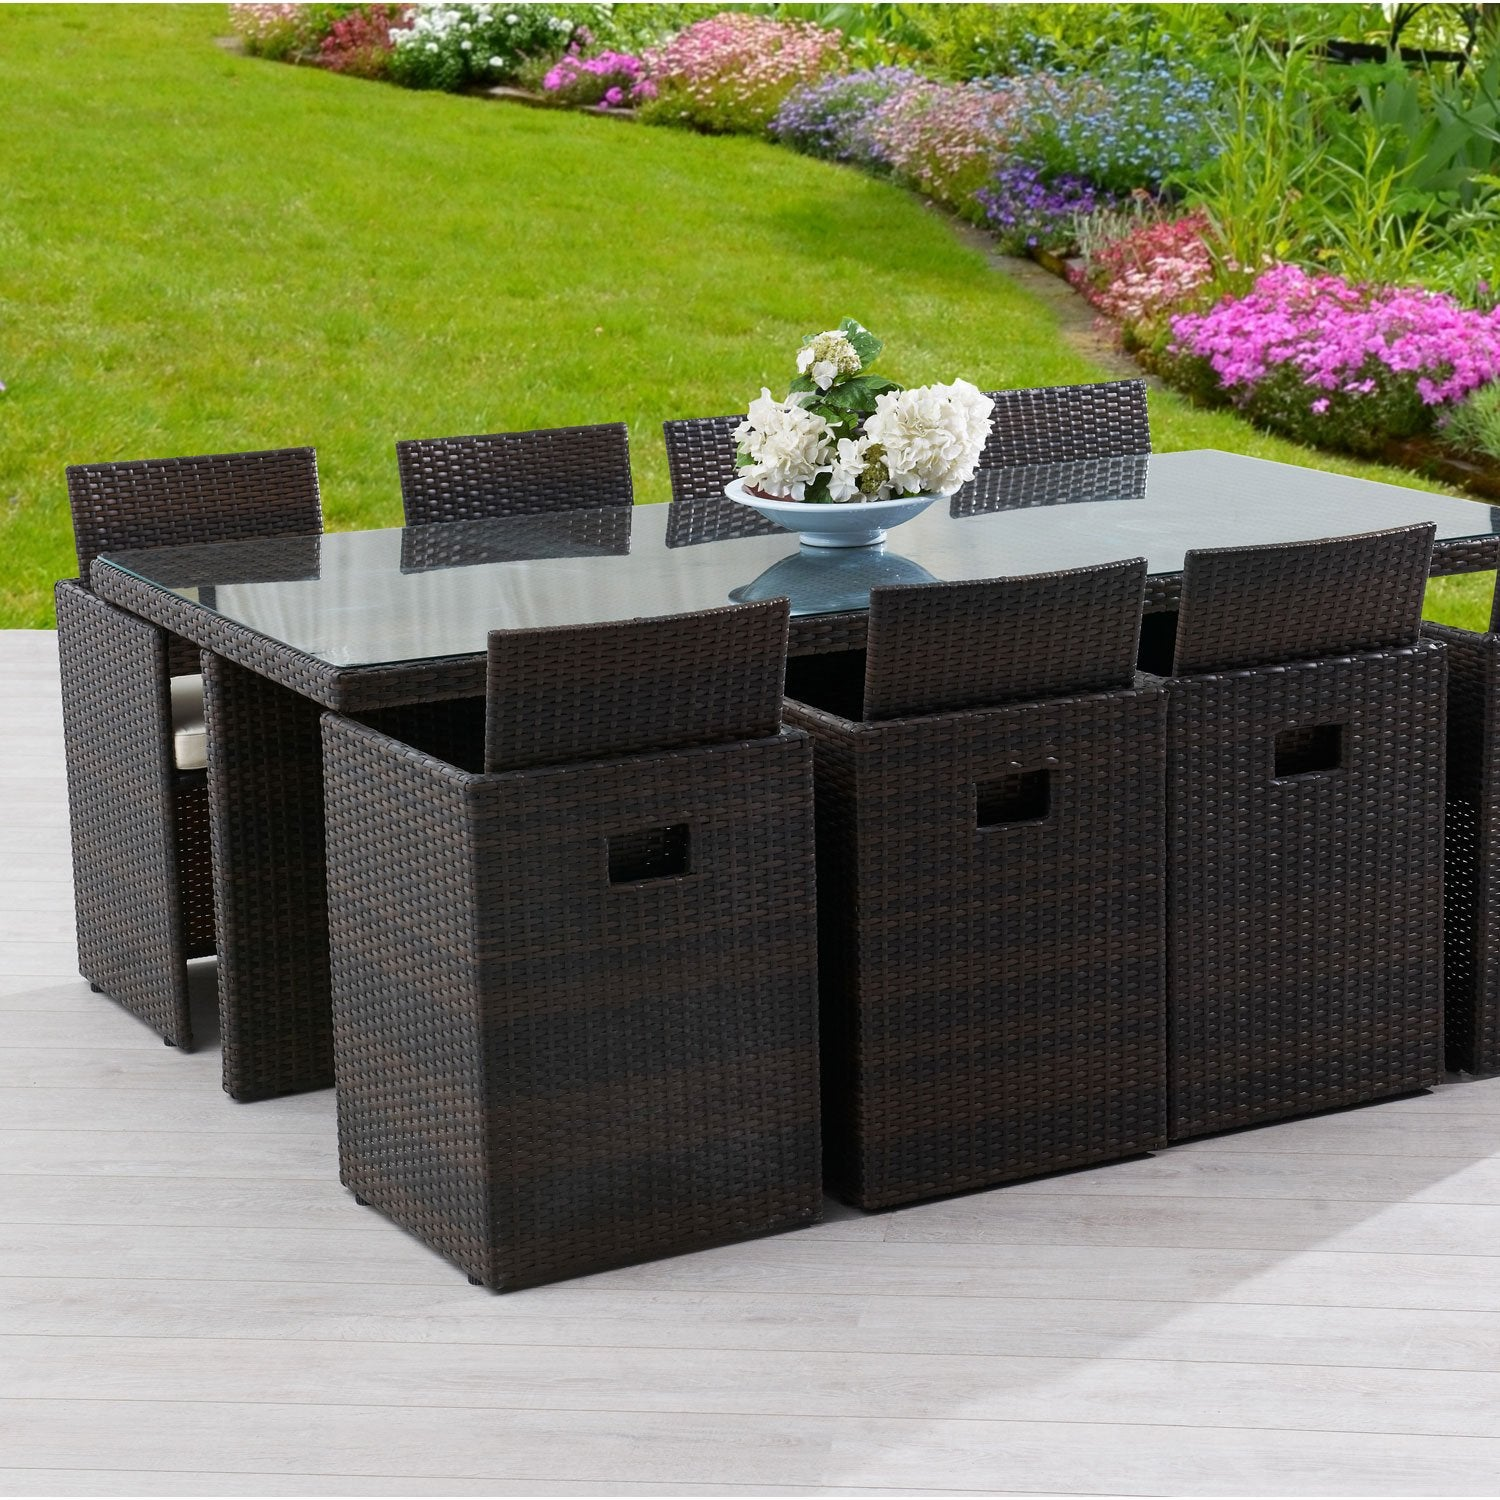 Salon de jardin encastrable r sine tress e marron 1 table - Carrefour table et chaise de jardin ...